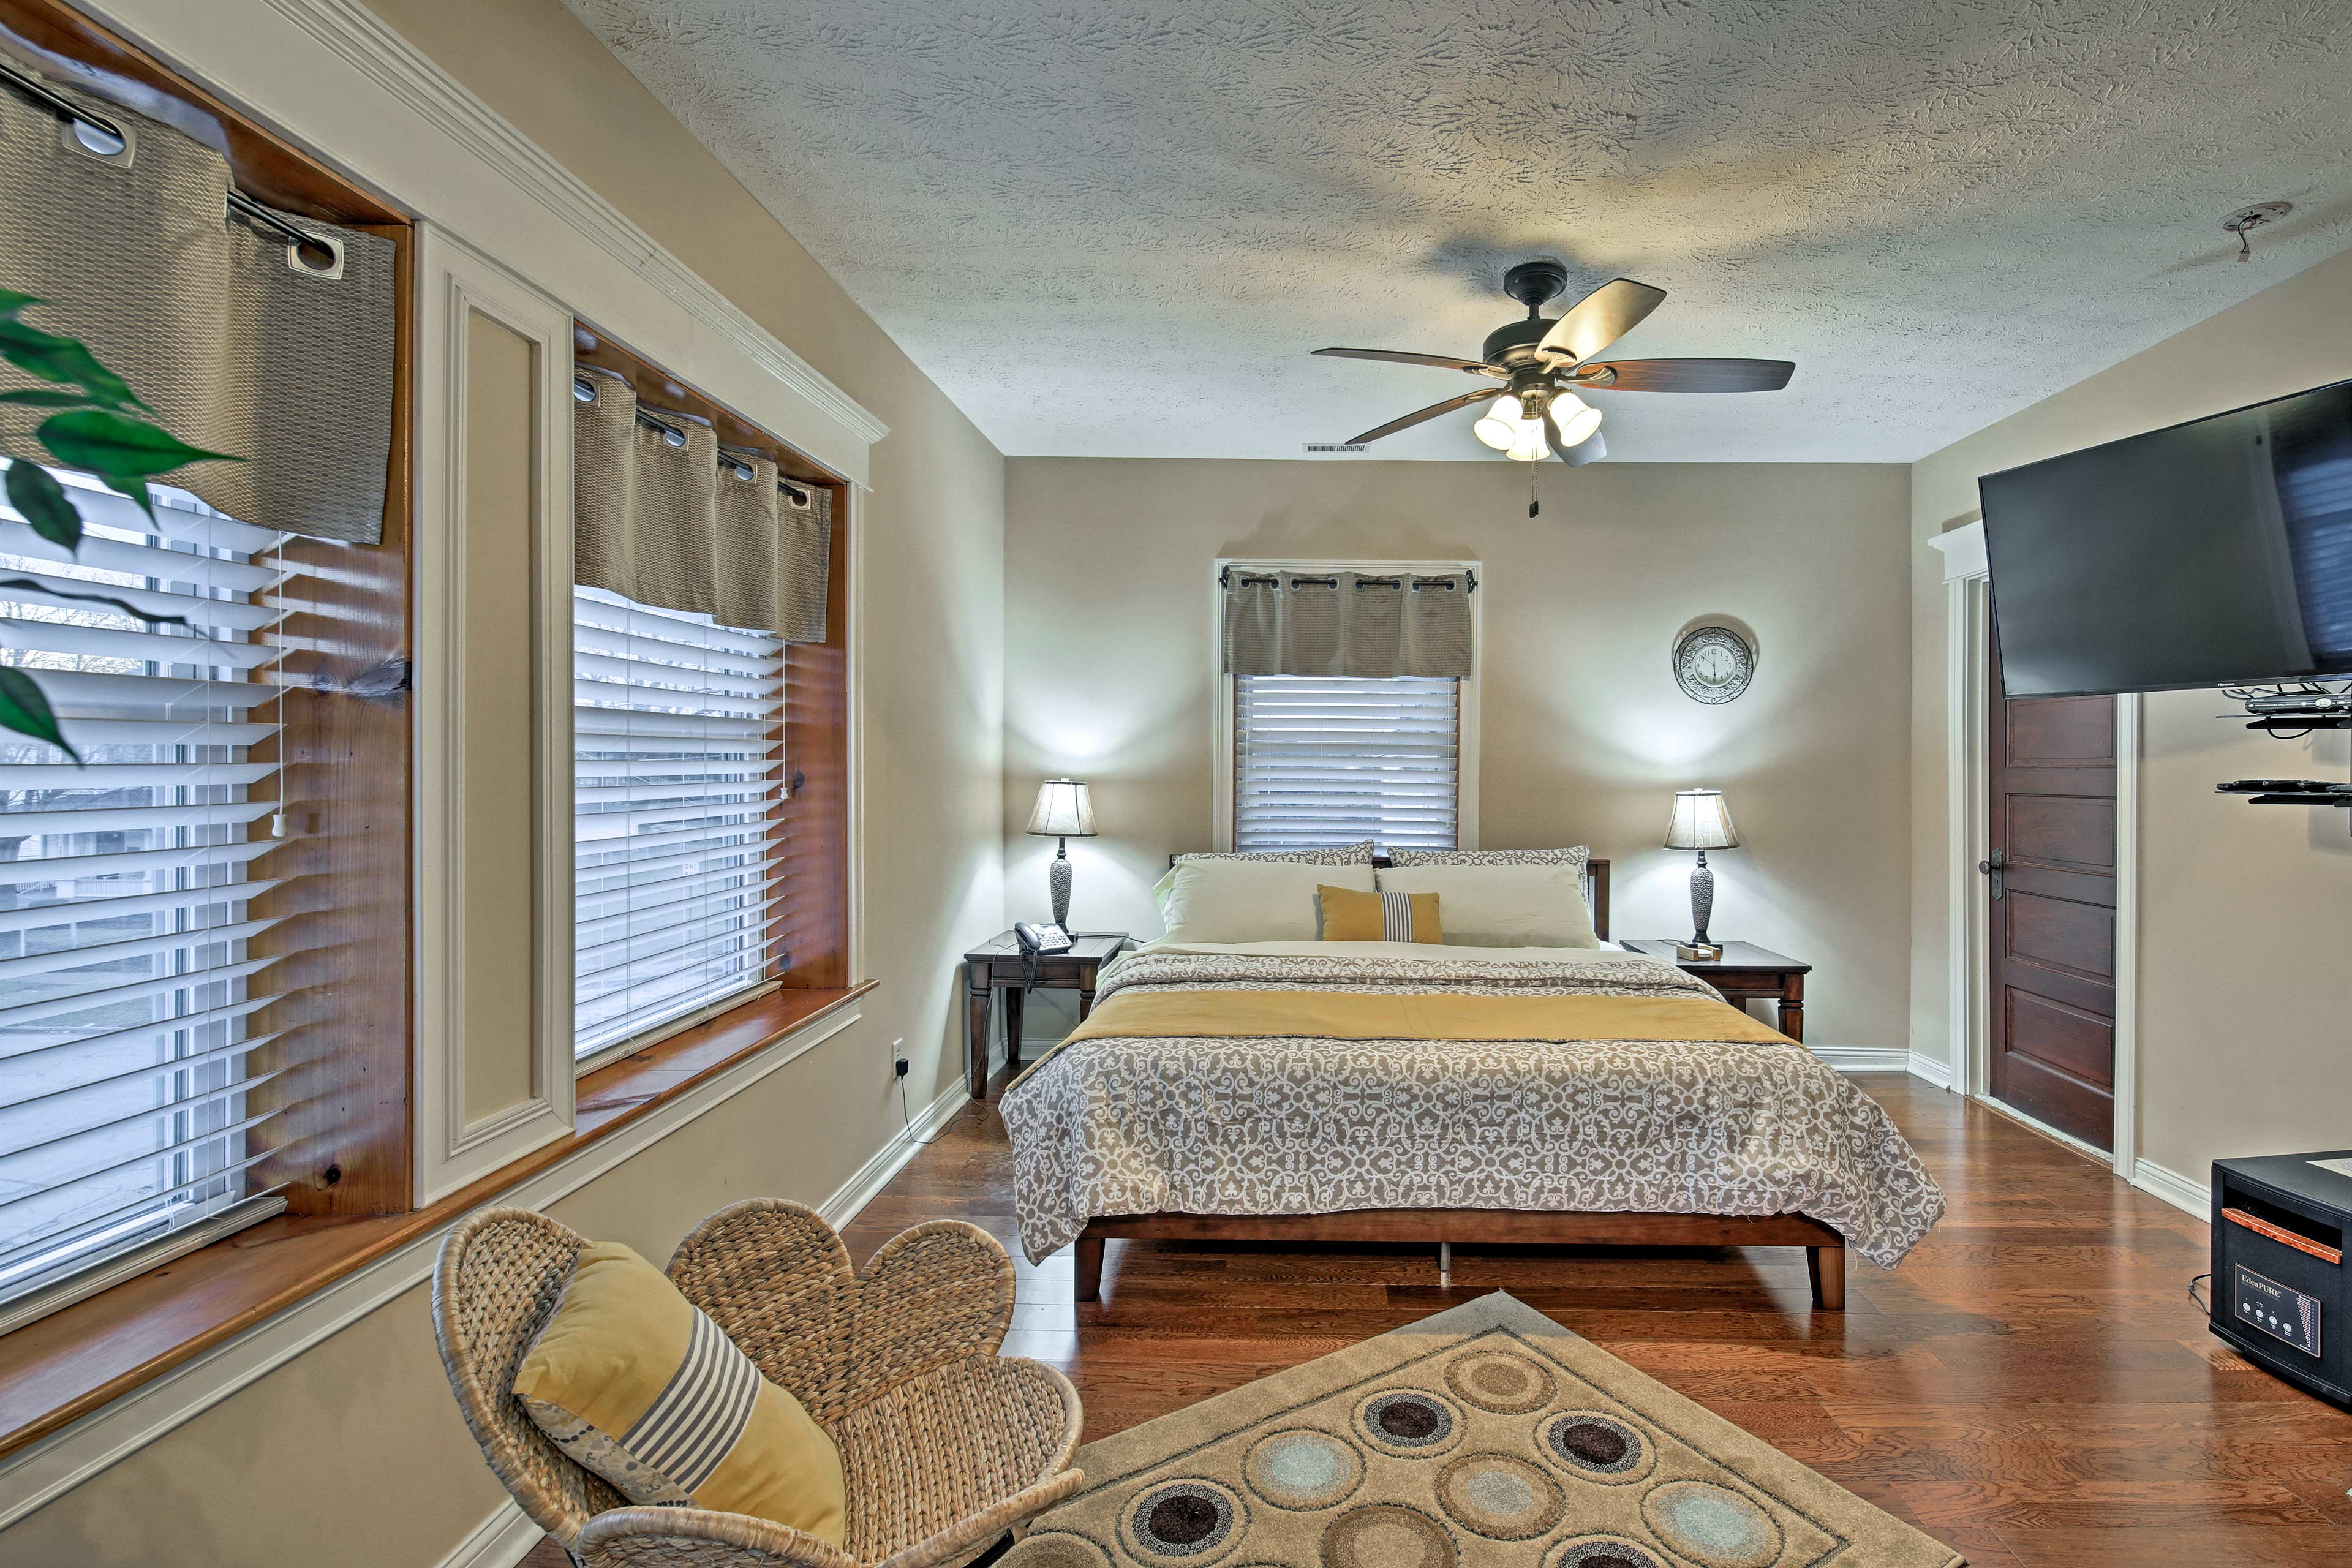 Two lucky guests will sleep well in the master bedroom.